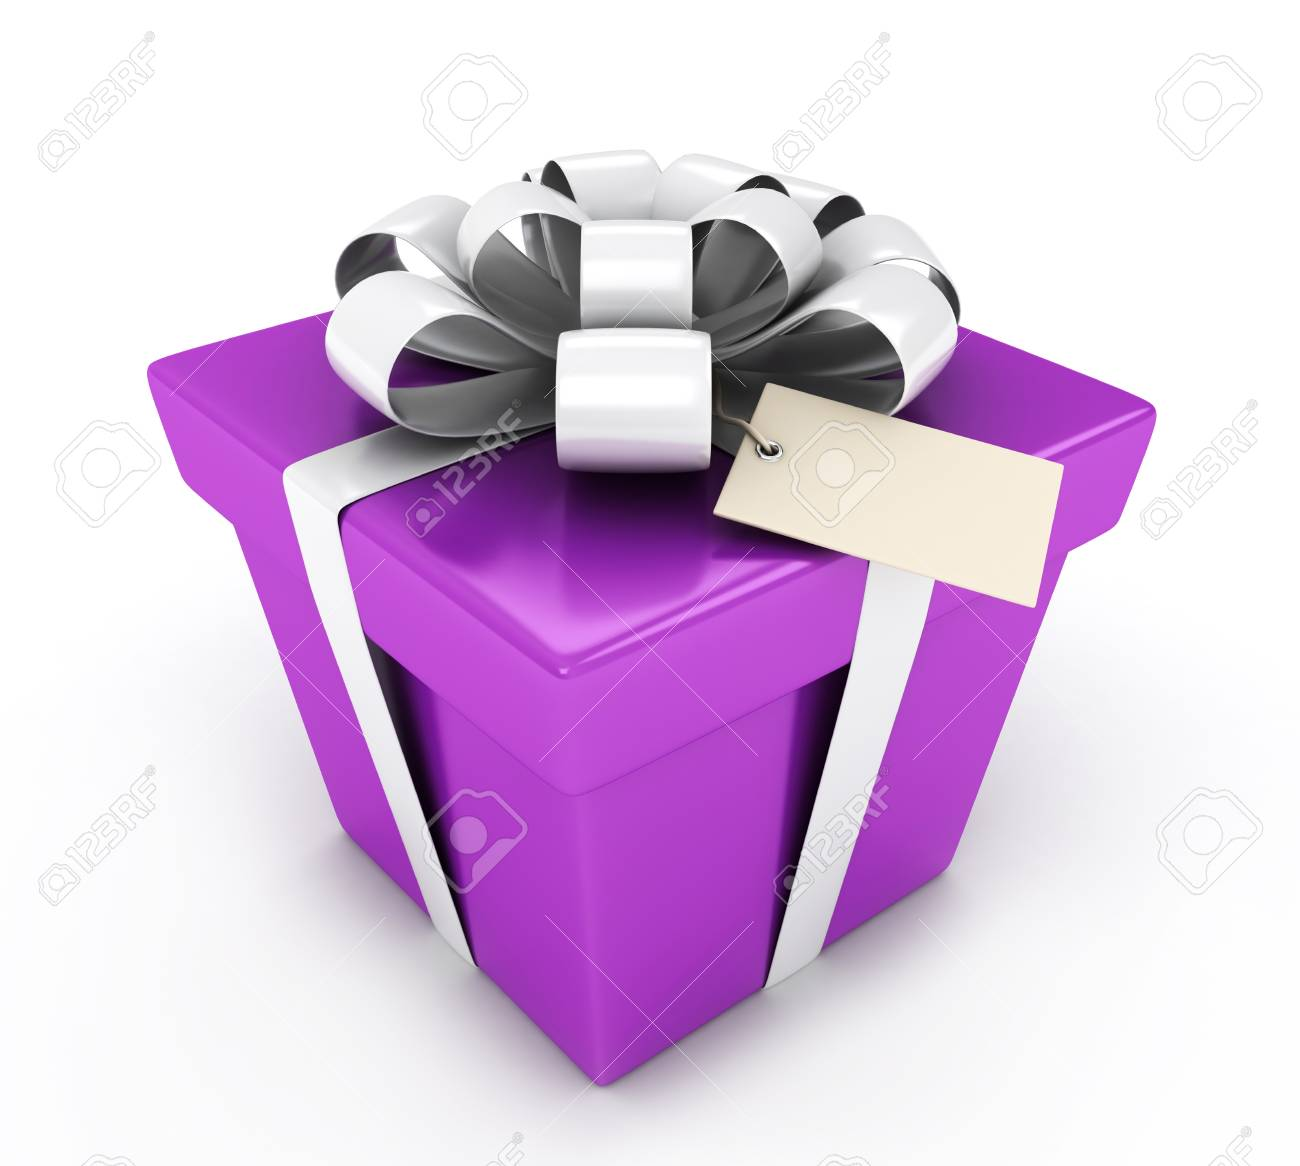 3D Illustration of a Gift with a Blank Card Attached Stock Photo - 9307251